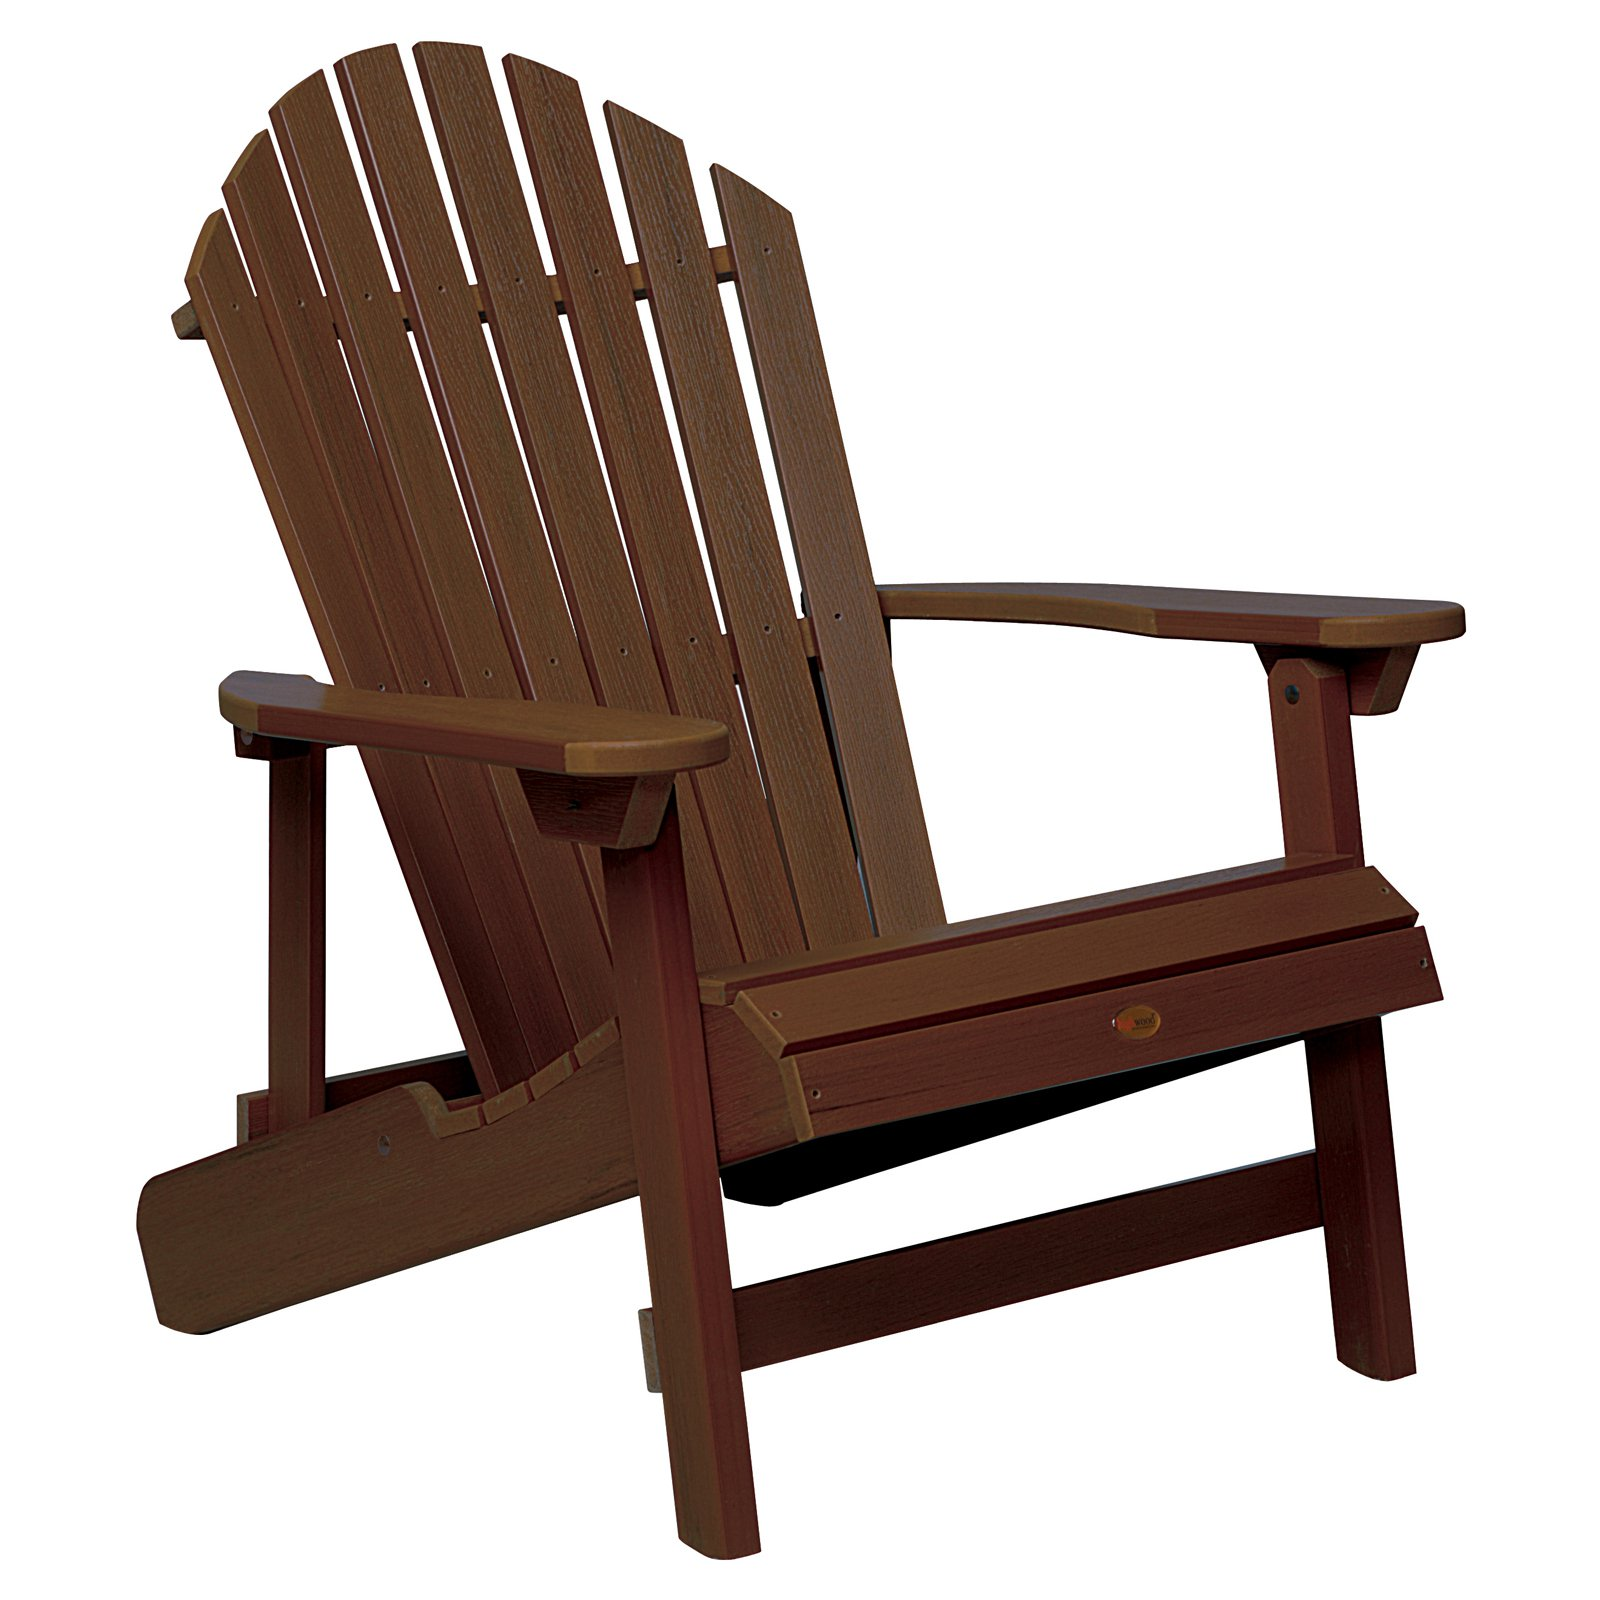 highwood KING Hamilton Folding & Reclining Adirondack Chair by Adirondack Furniture